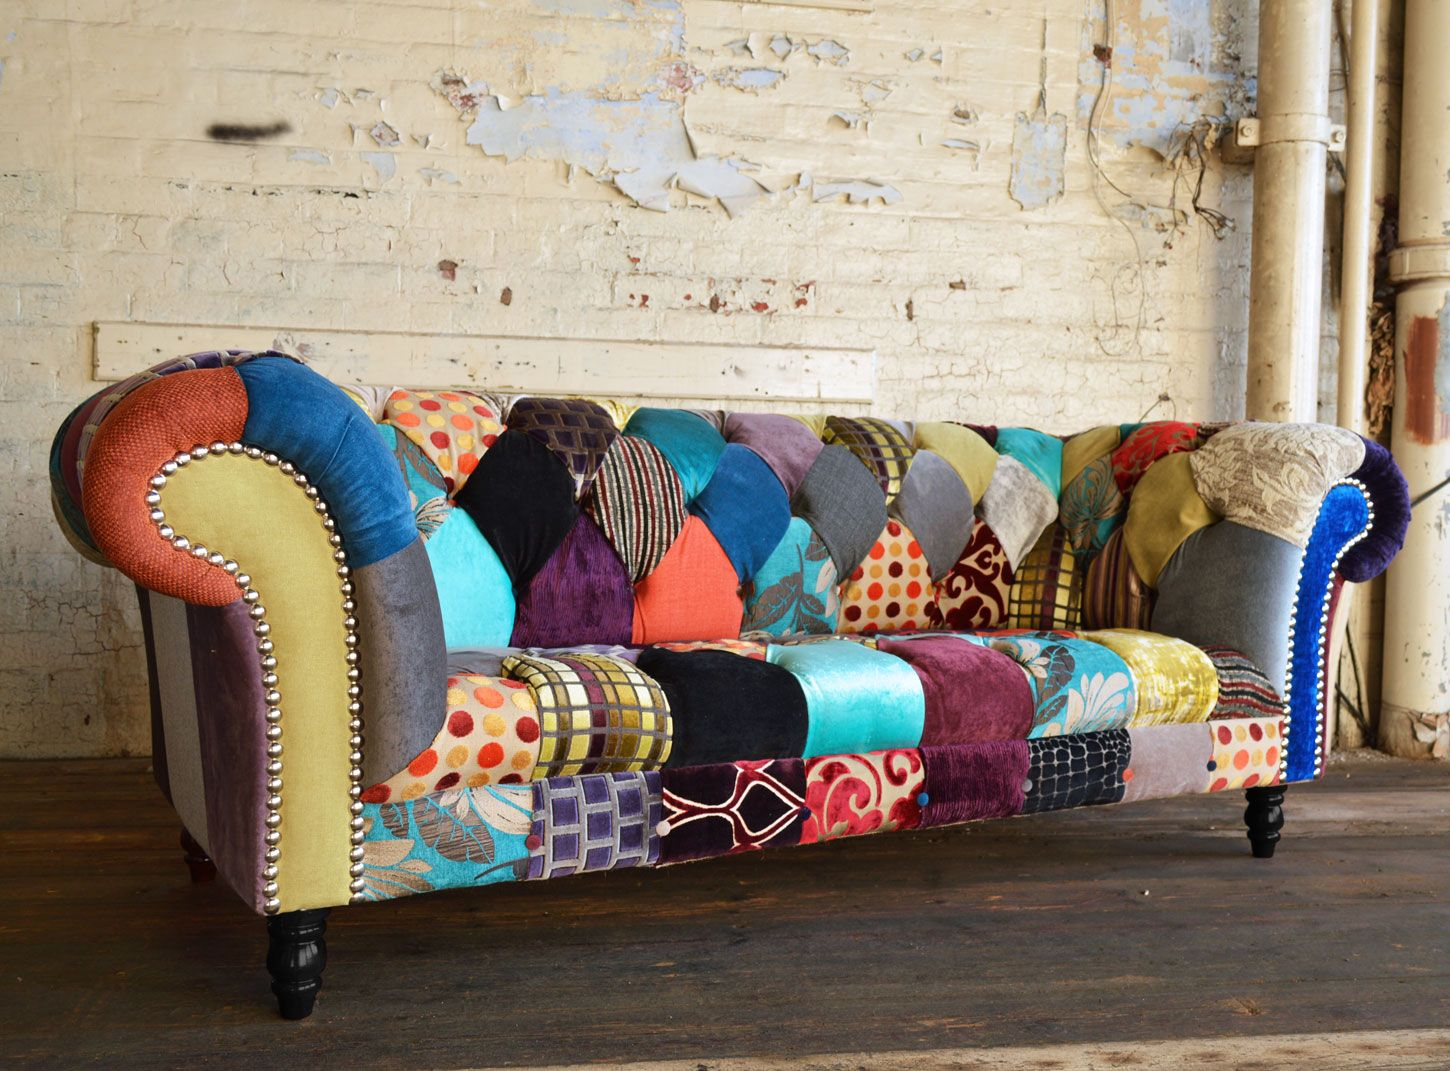 Modern British And Handmade Patterned Patchwork Chesterfield Sofa Totally Unique Fabric 3 Seater Patchwork Furniture Patchwork Chesterfield Sofa Sofa Handmade